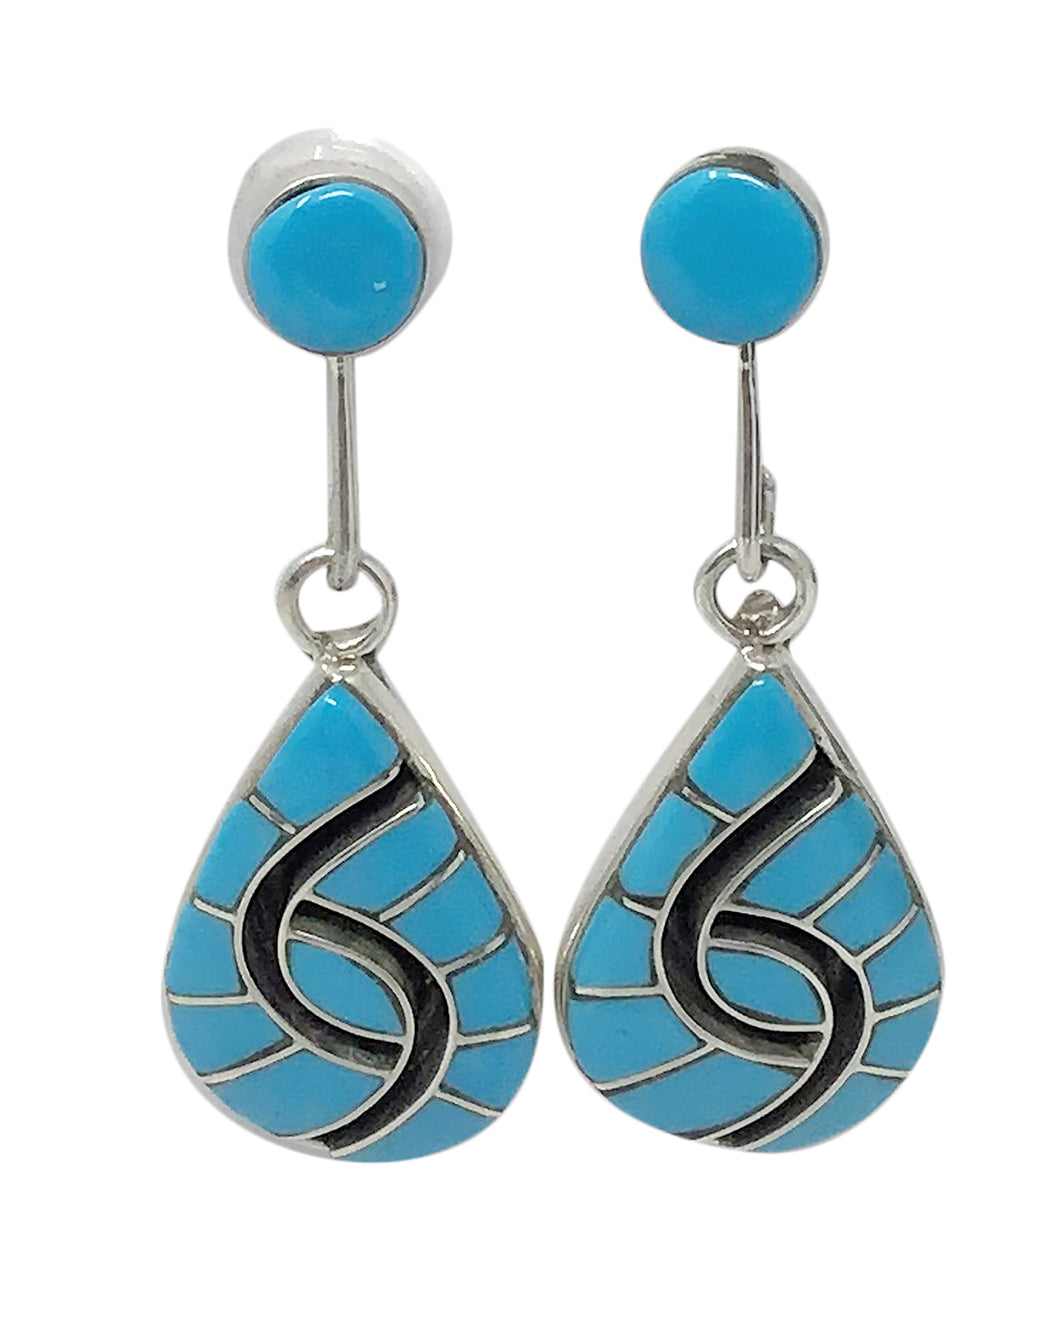 Amy Quandelacy, Earrings, Turquoise, Channel Inlay, Zuni Handmade, 1 7/8